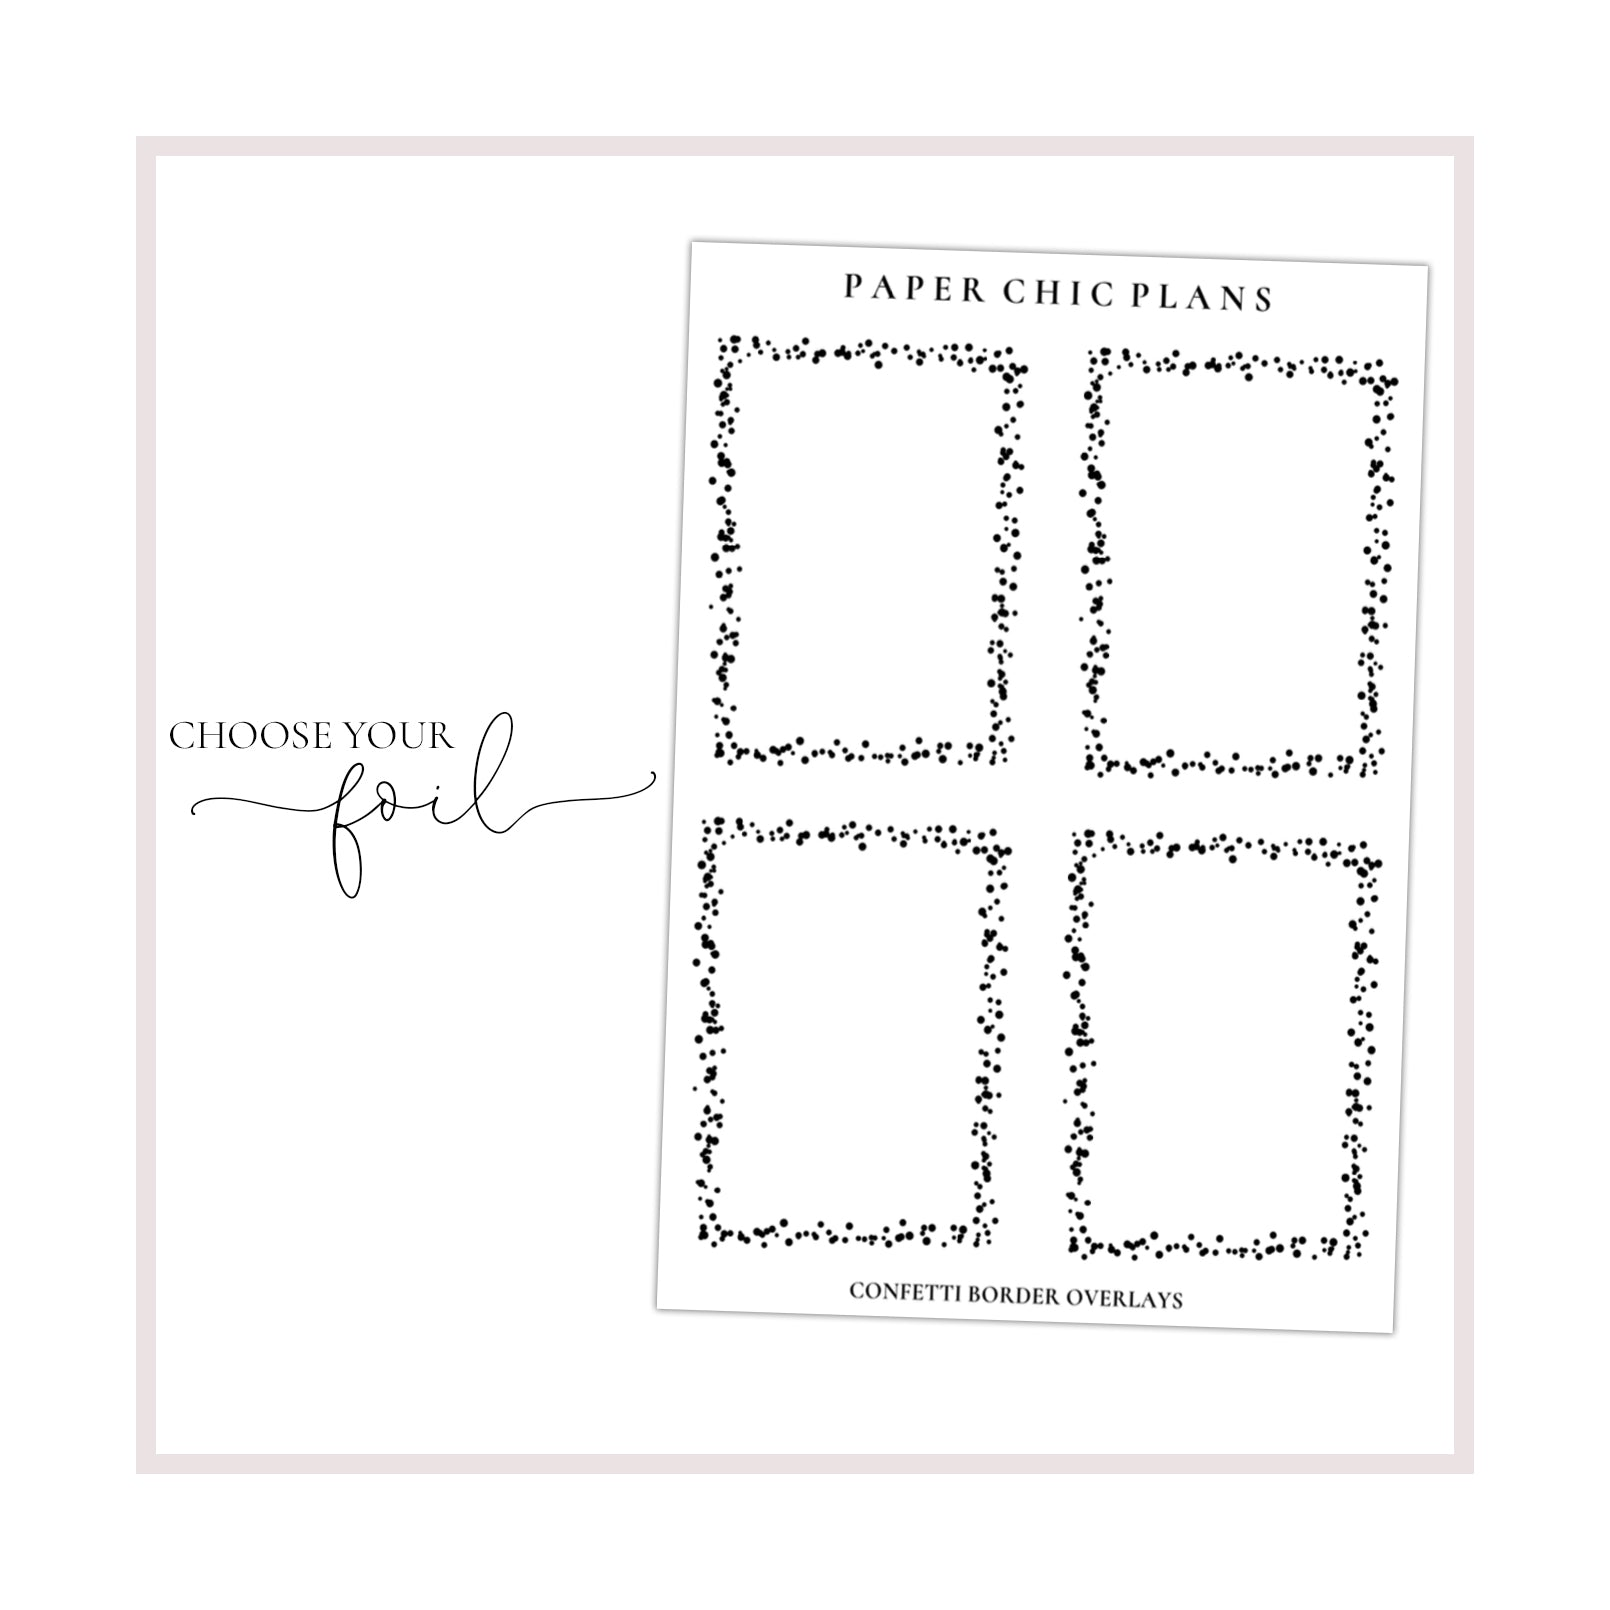 Full Box Confetti Border Overlays // Foiled - Paper Chic Plans